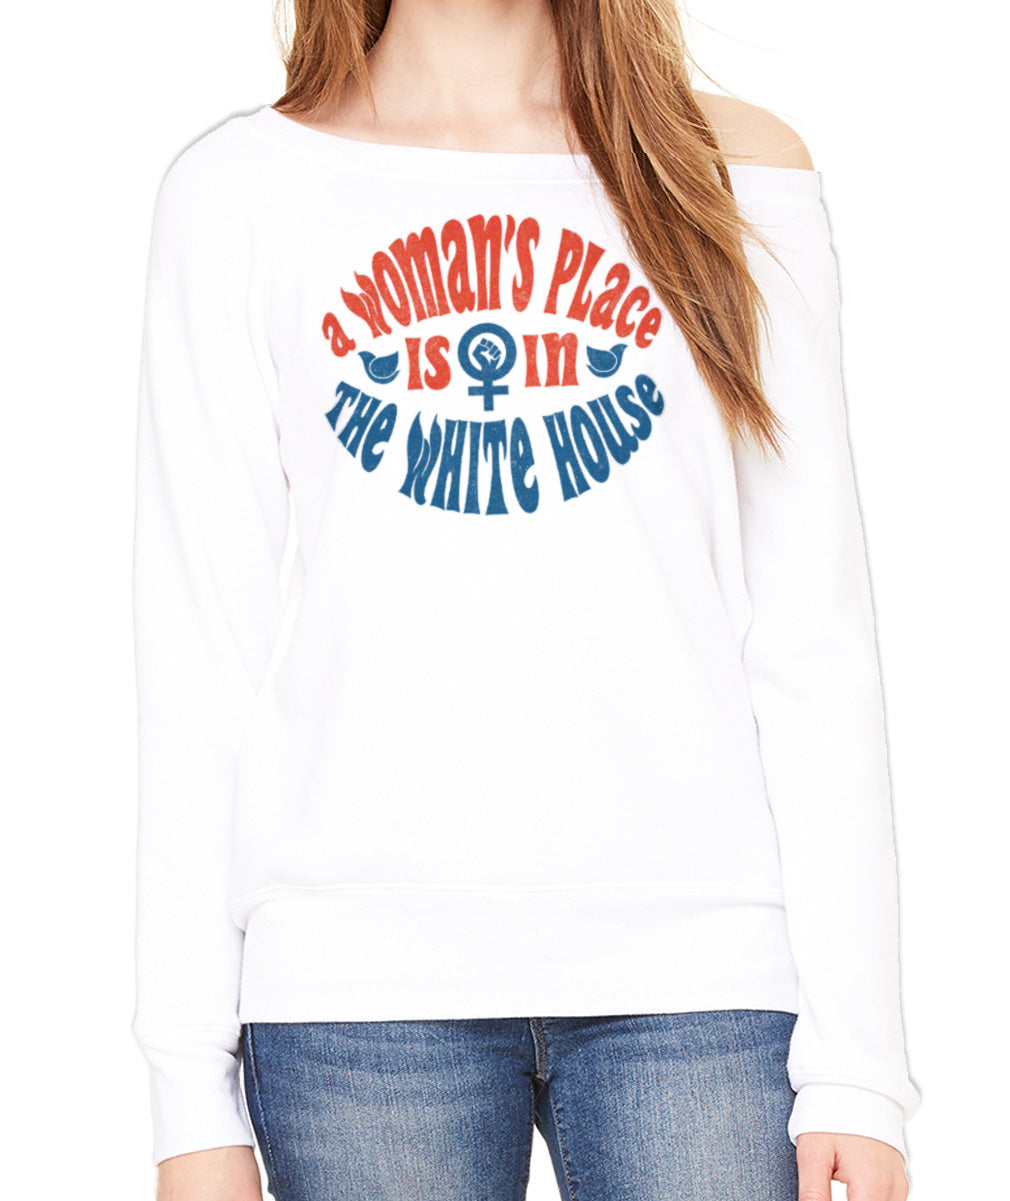 Women's A Woman's Place is in The White House Scoop Neck Fleece